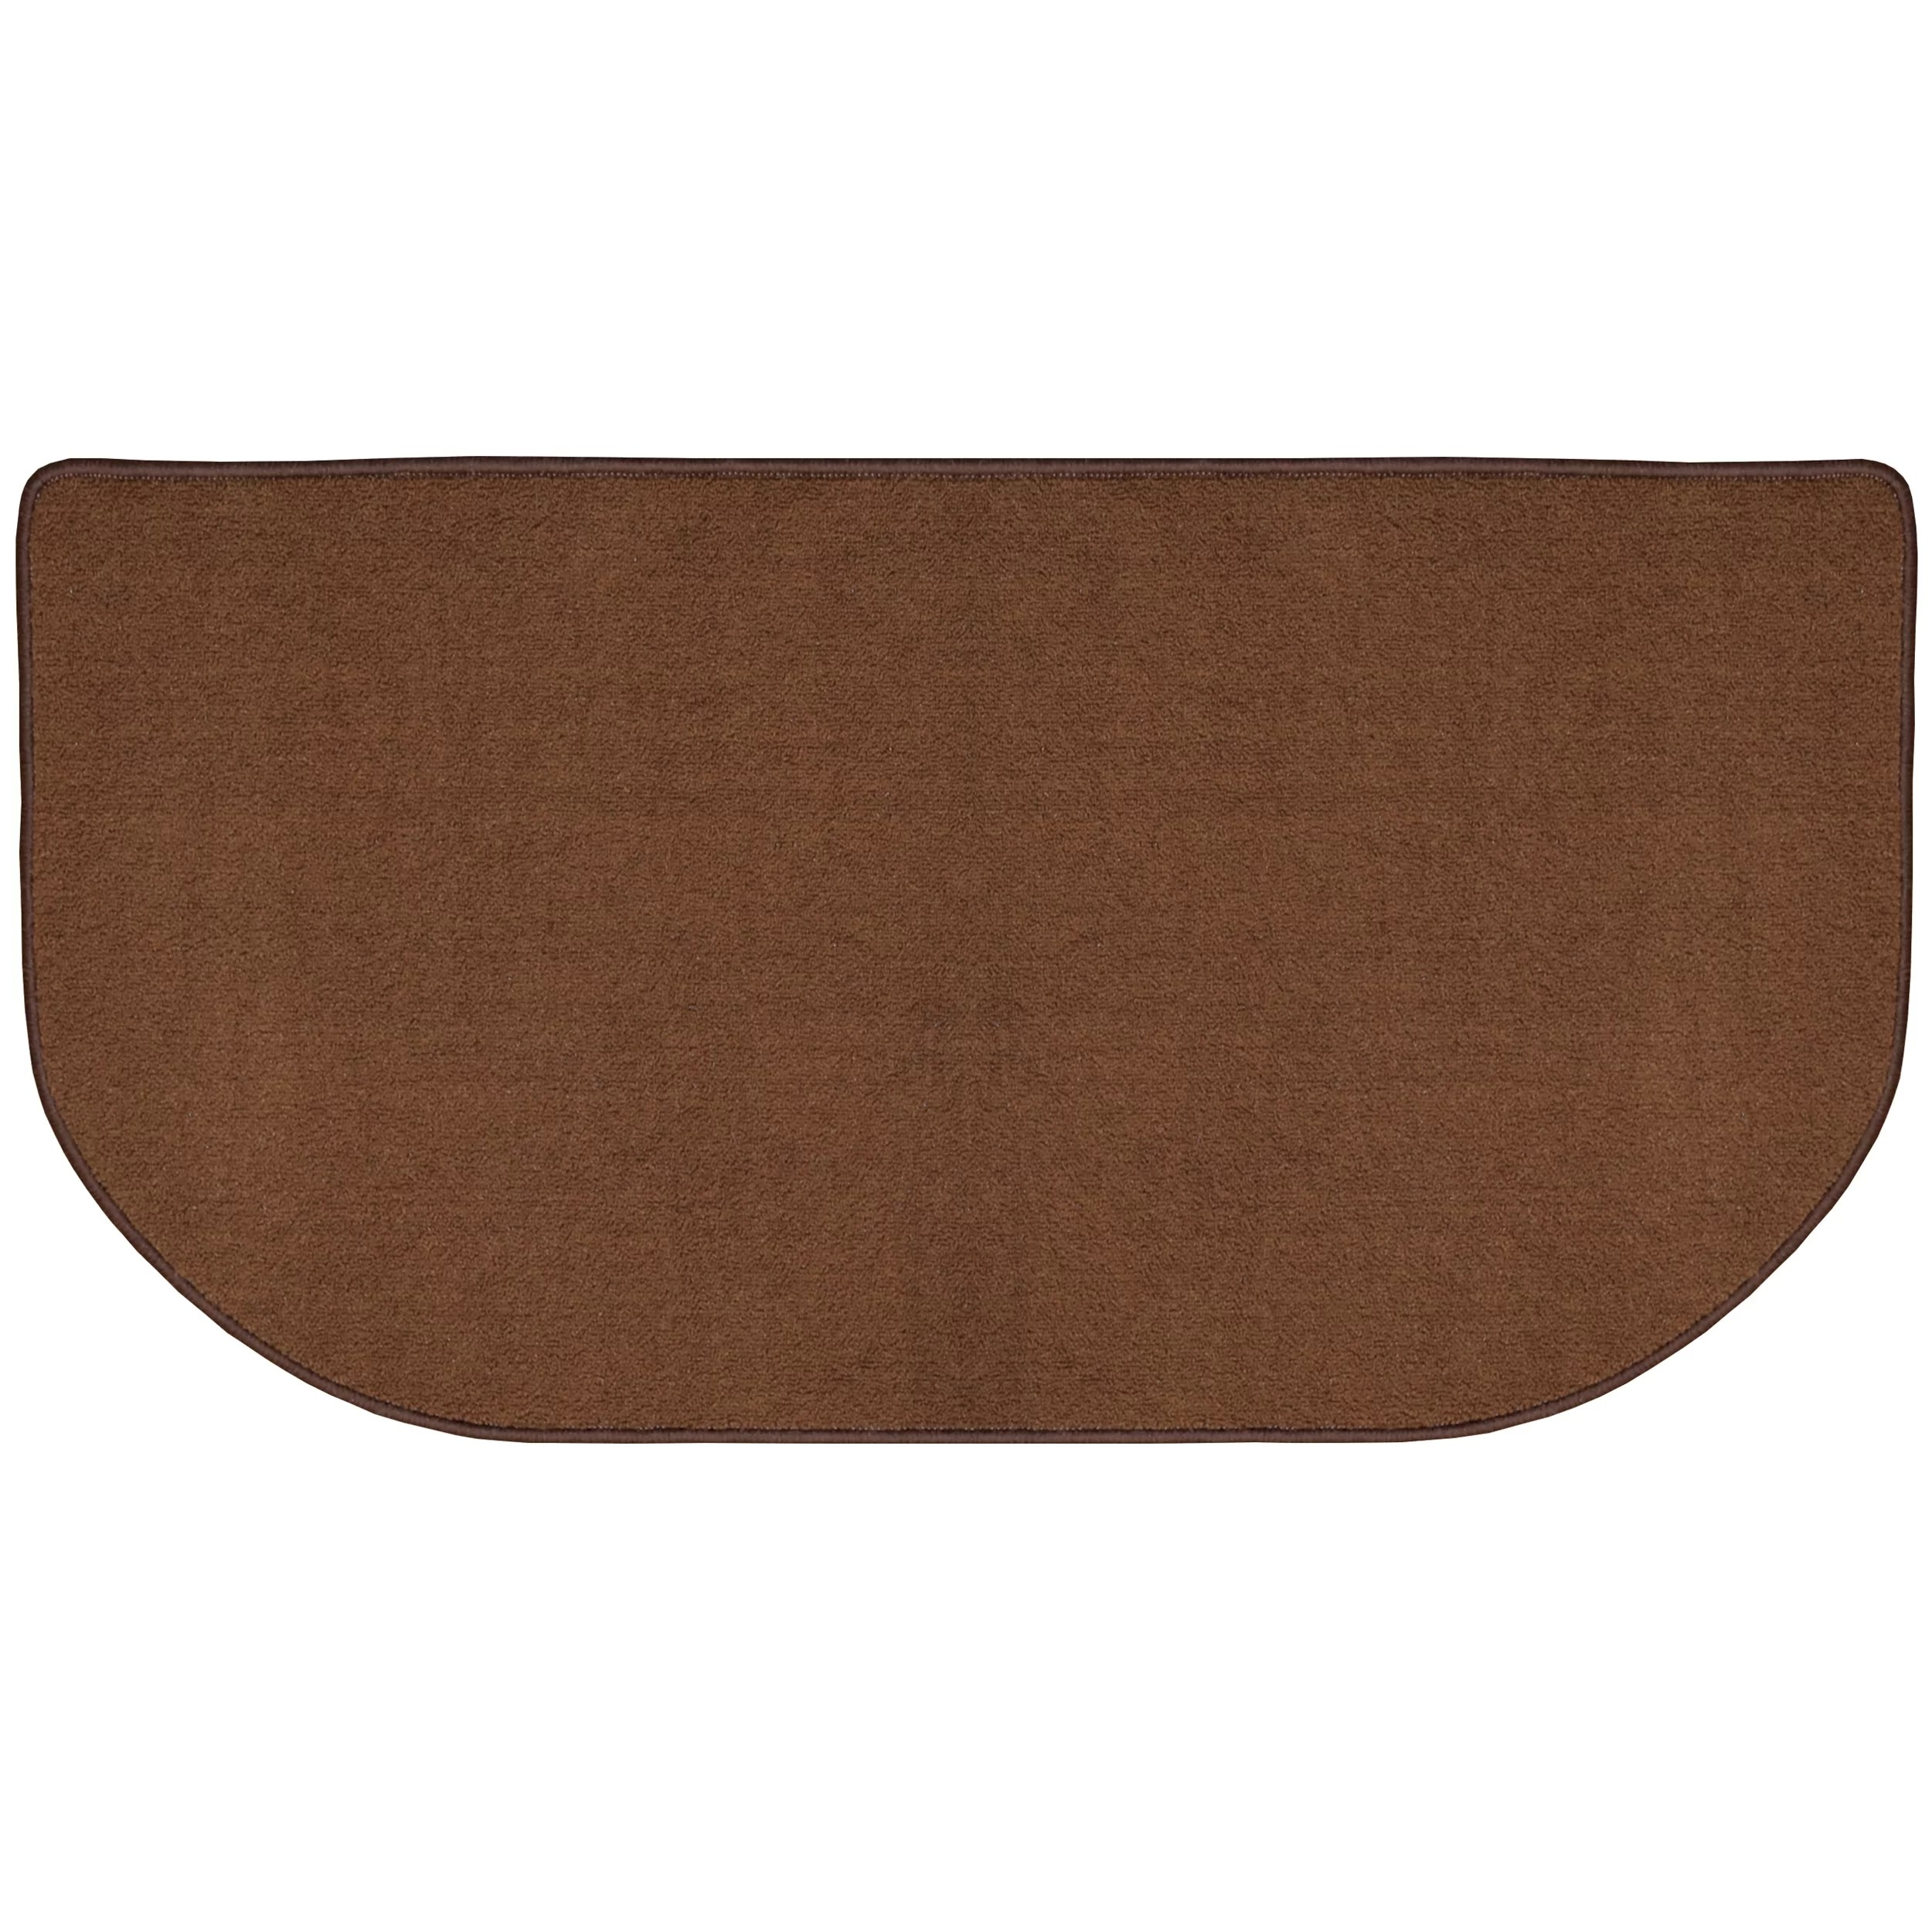 Fireplace Hearth Mat Uniflame Hearth Rug And Reviews Wayfair